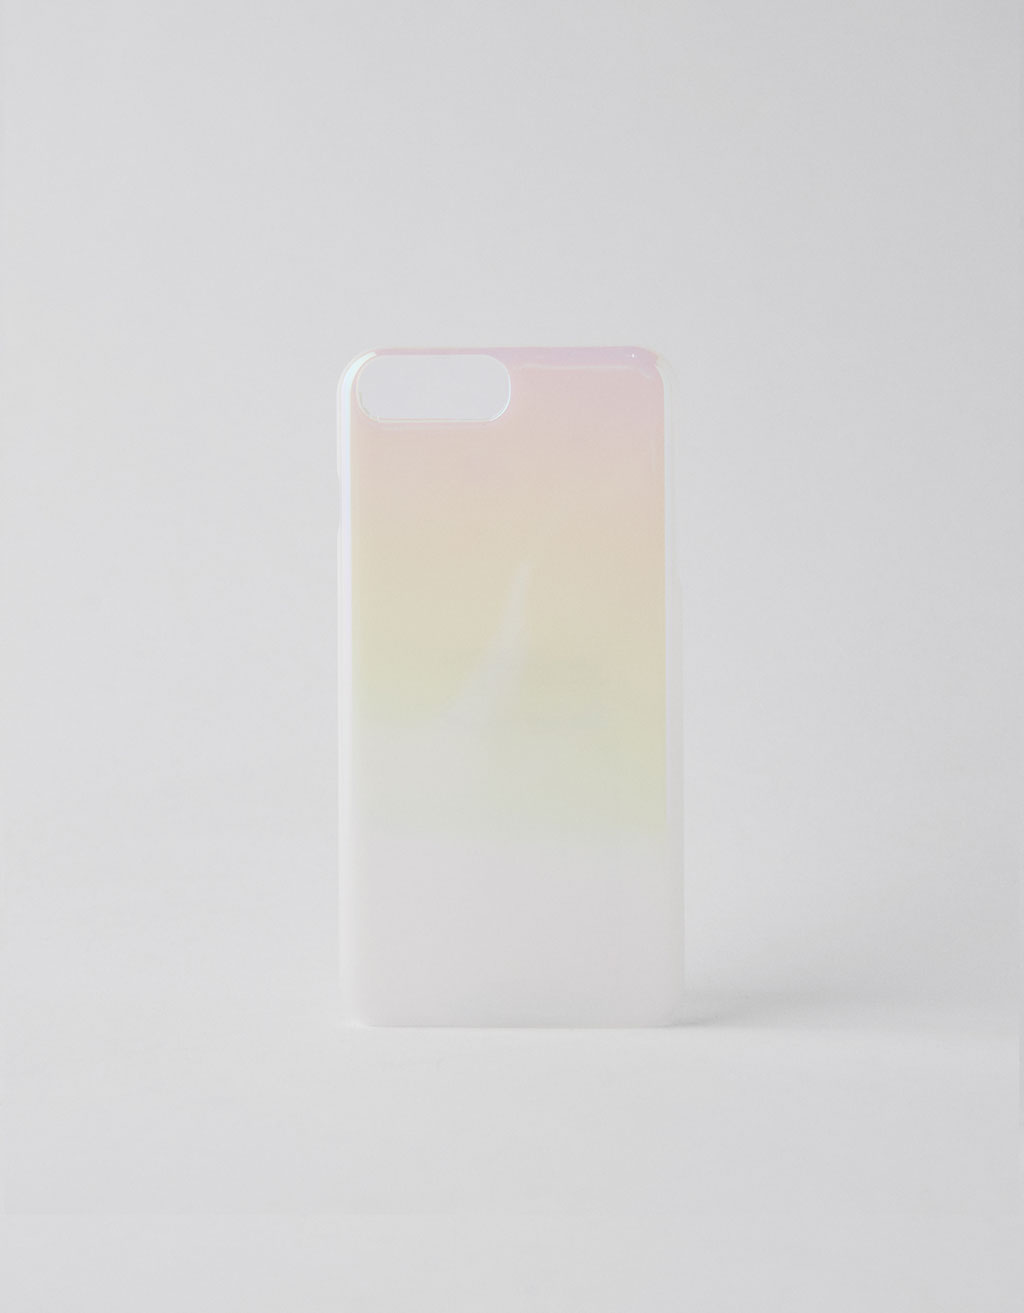 Iridescent iPhone 6 Plus/7 Plus/8 Plus case